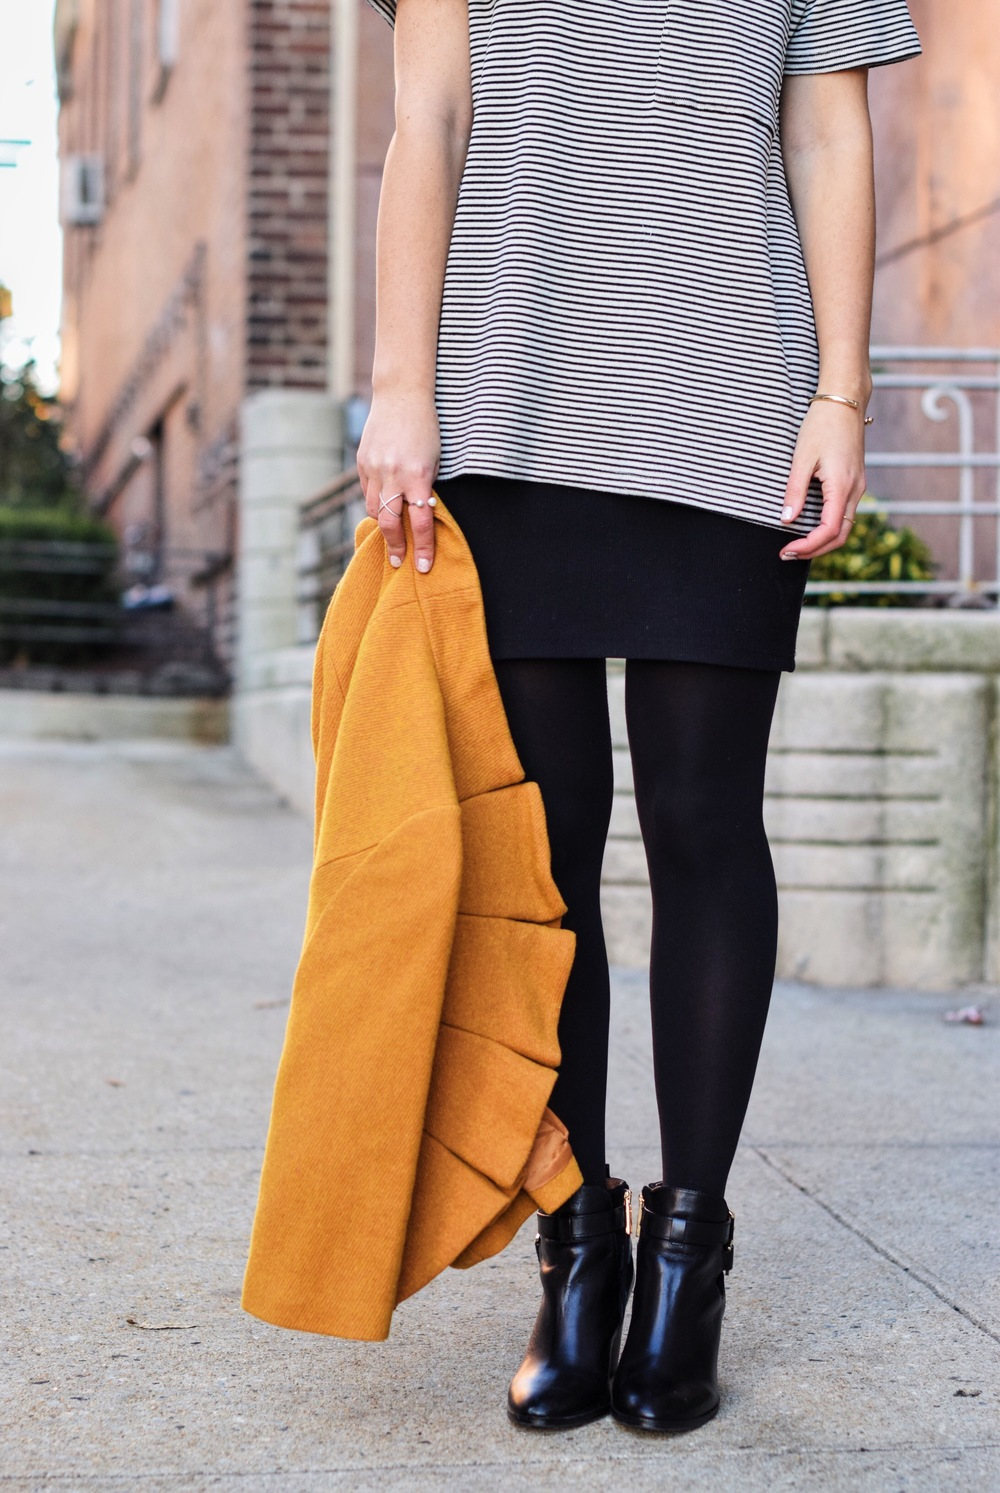 Yellow Ruffled Jacket Striped Tee Louboutins & Love Fashion Blog Esther Santer NYC Street Style Blogger Zara Pocket Tshirt Outfit OOTD Inspo Inspiration Photoshoot New York City Black Booties Shoes Soul Beadz Jeweled Rings Girl Hair Shopping Women.jpg